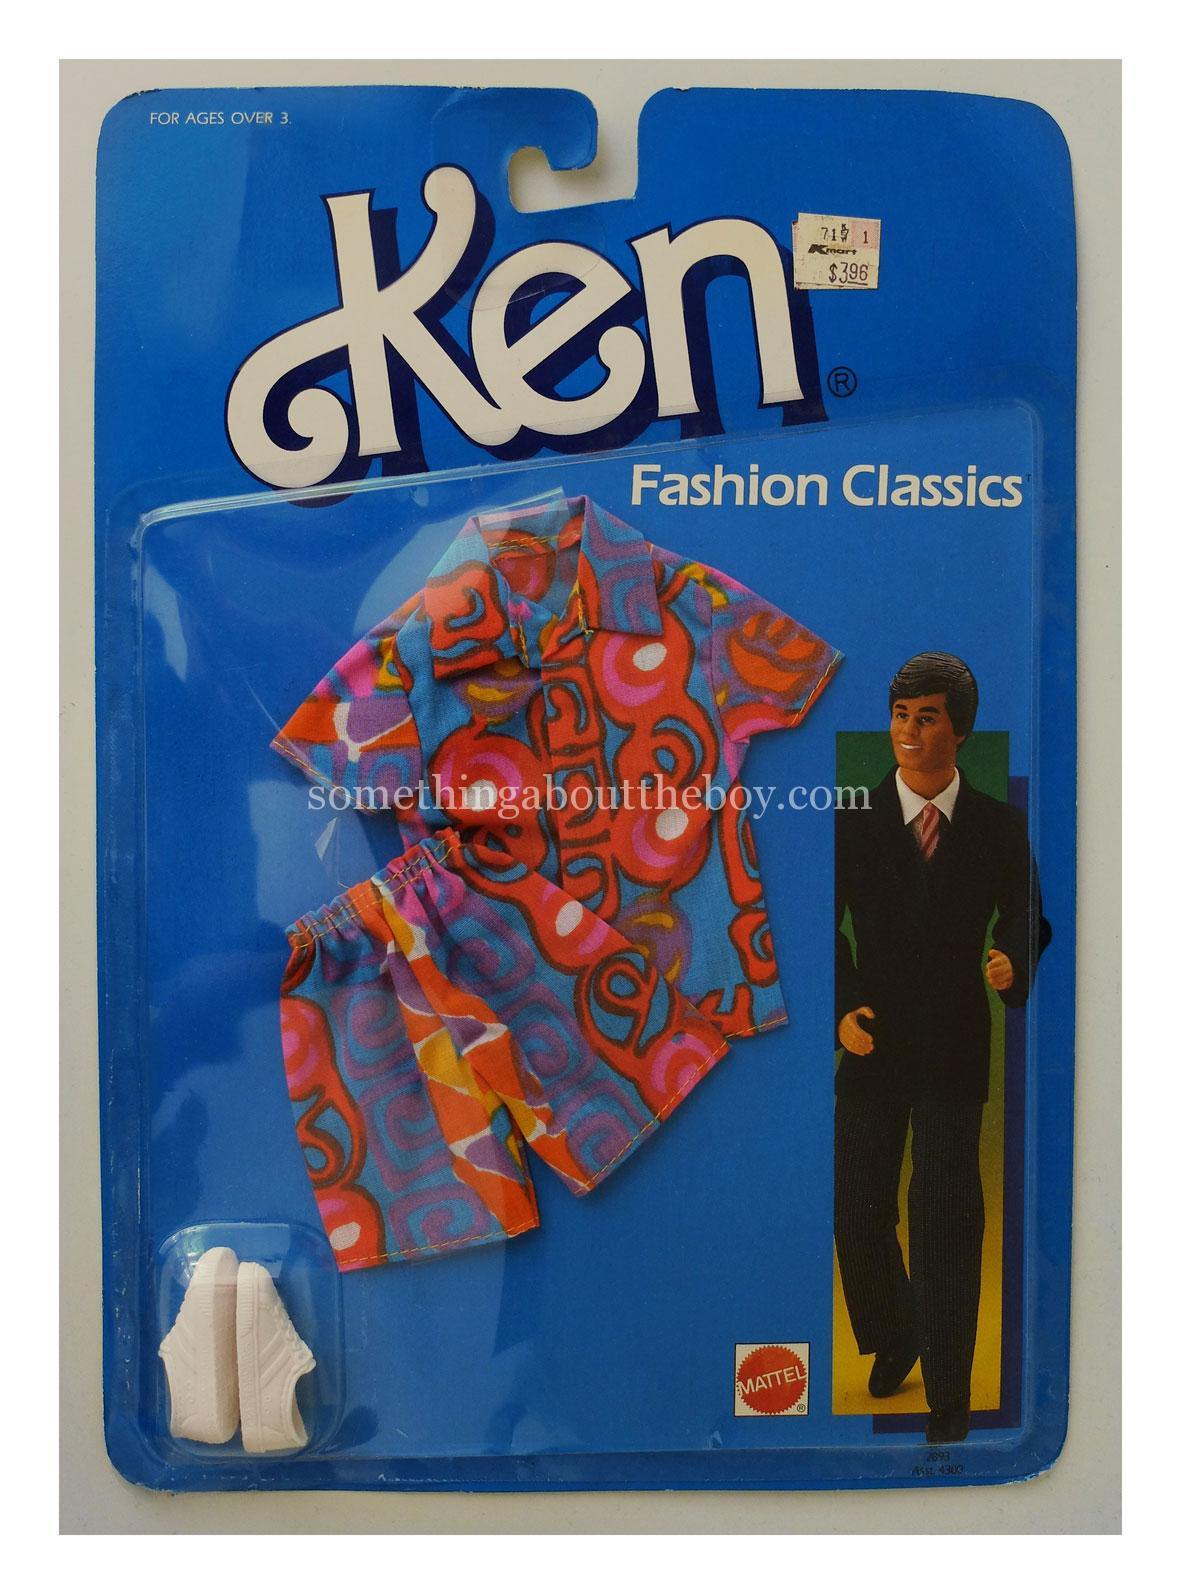 1986-87 Kmart Fashion Classics #2892 in original packaging